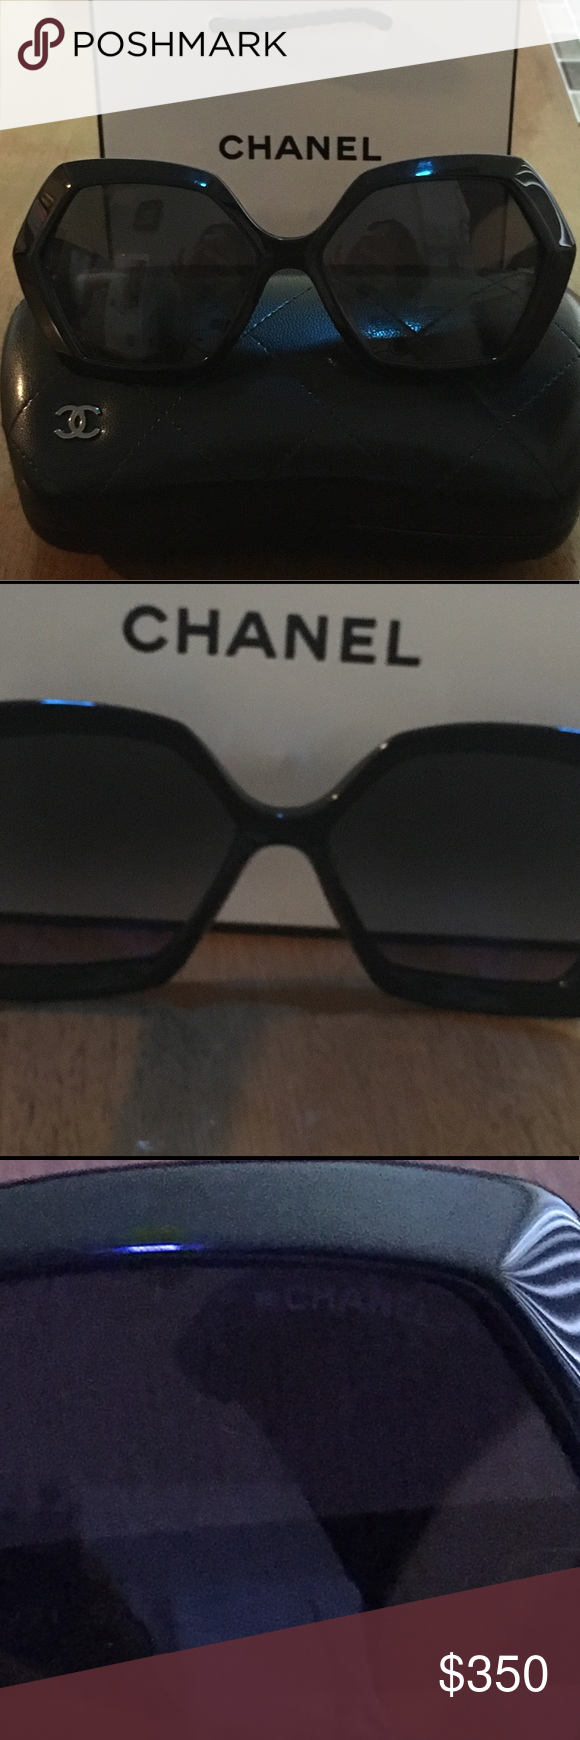 115ef0d4eeb1 Spotted while shopping on Poshmark  New CHANEL square eyeglasses!  poshmark   fashion  shopping  style  CHANEL  Accessories